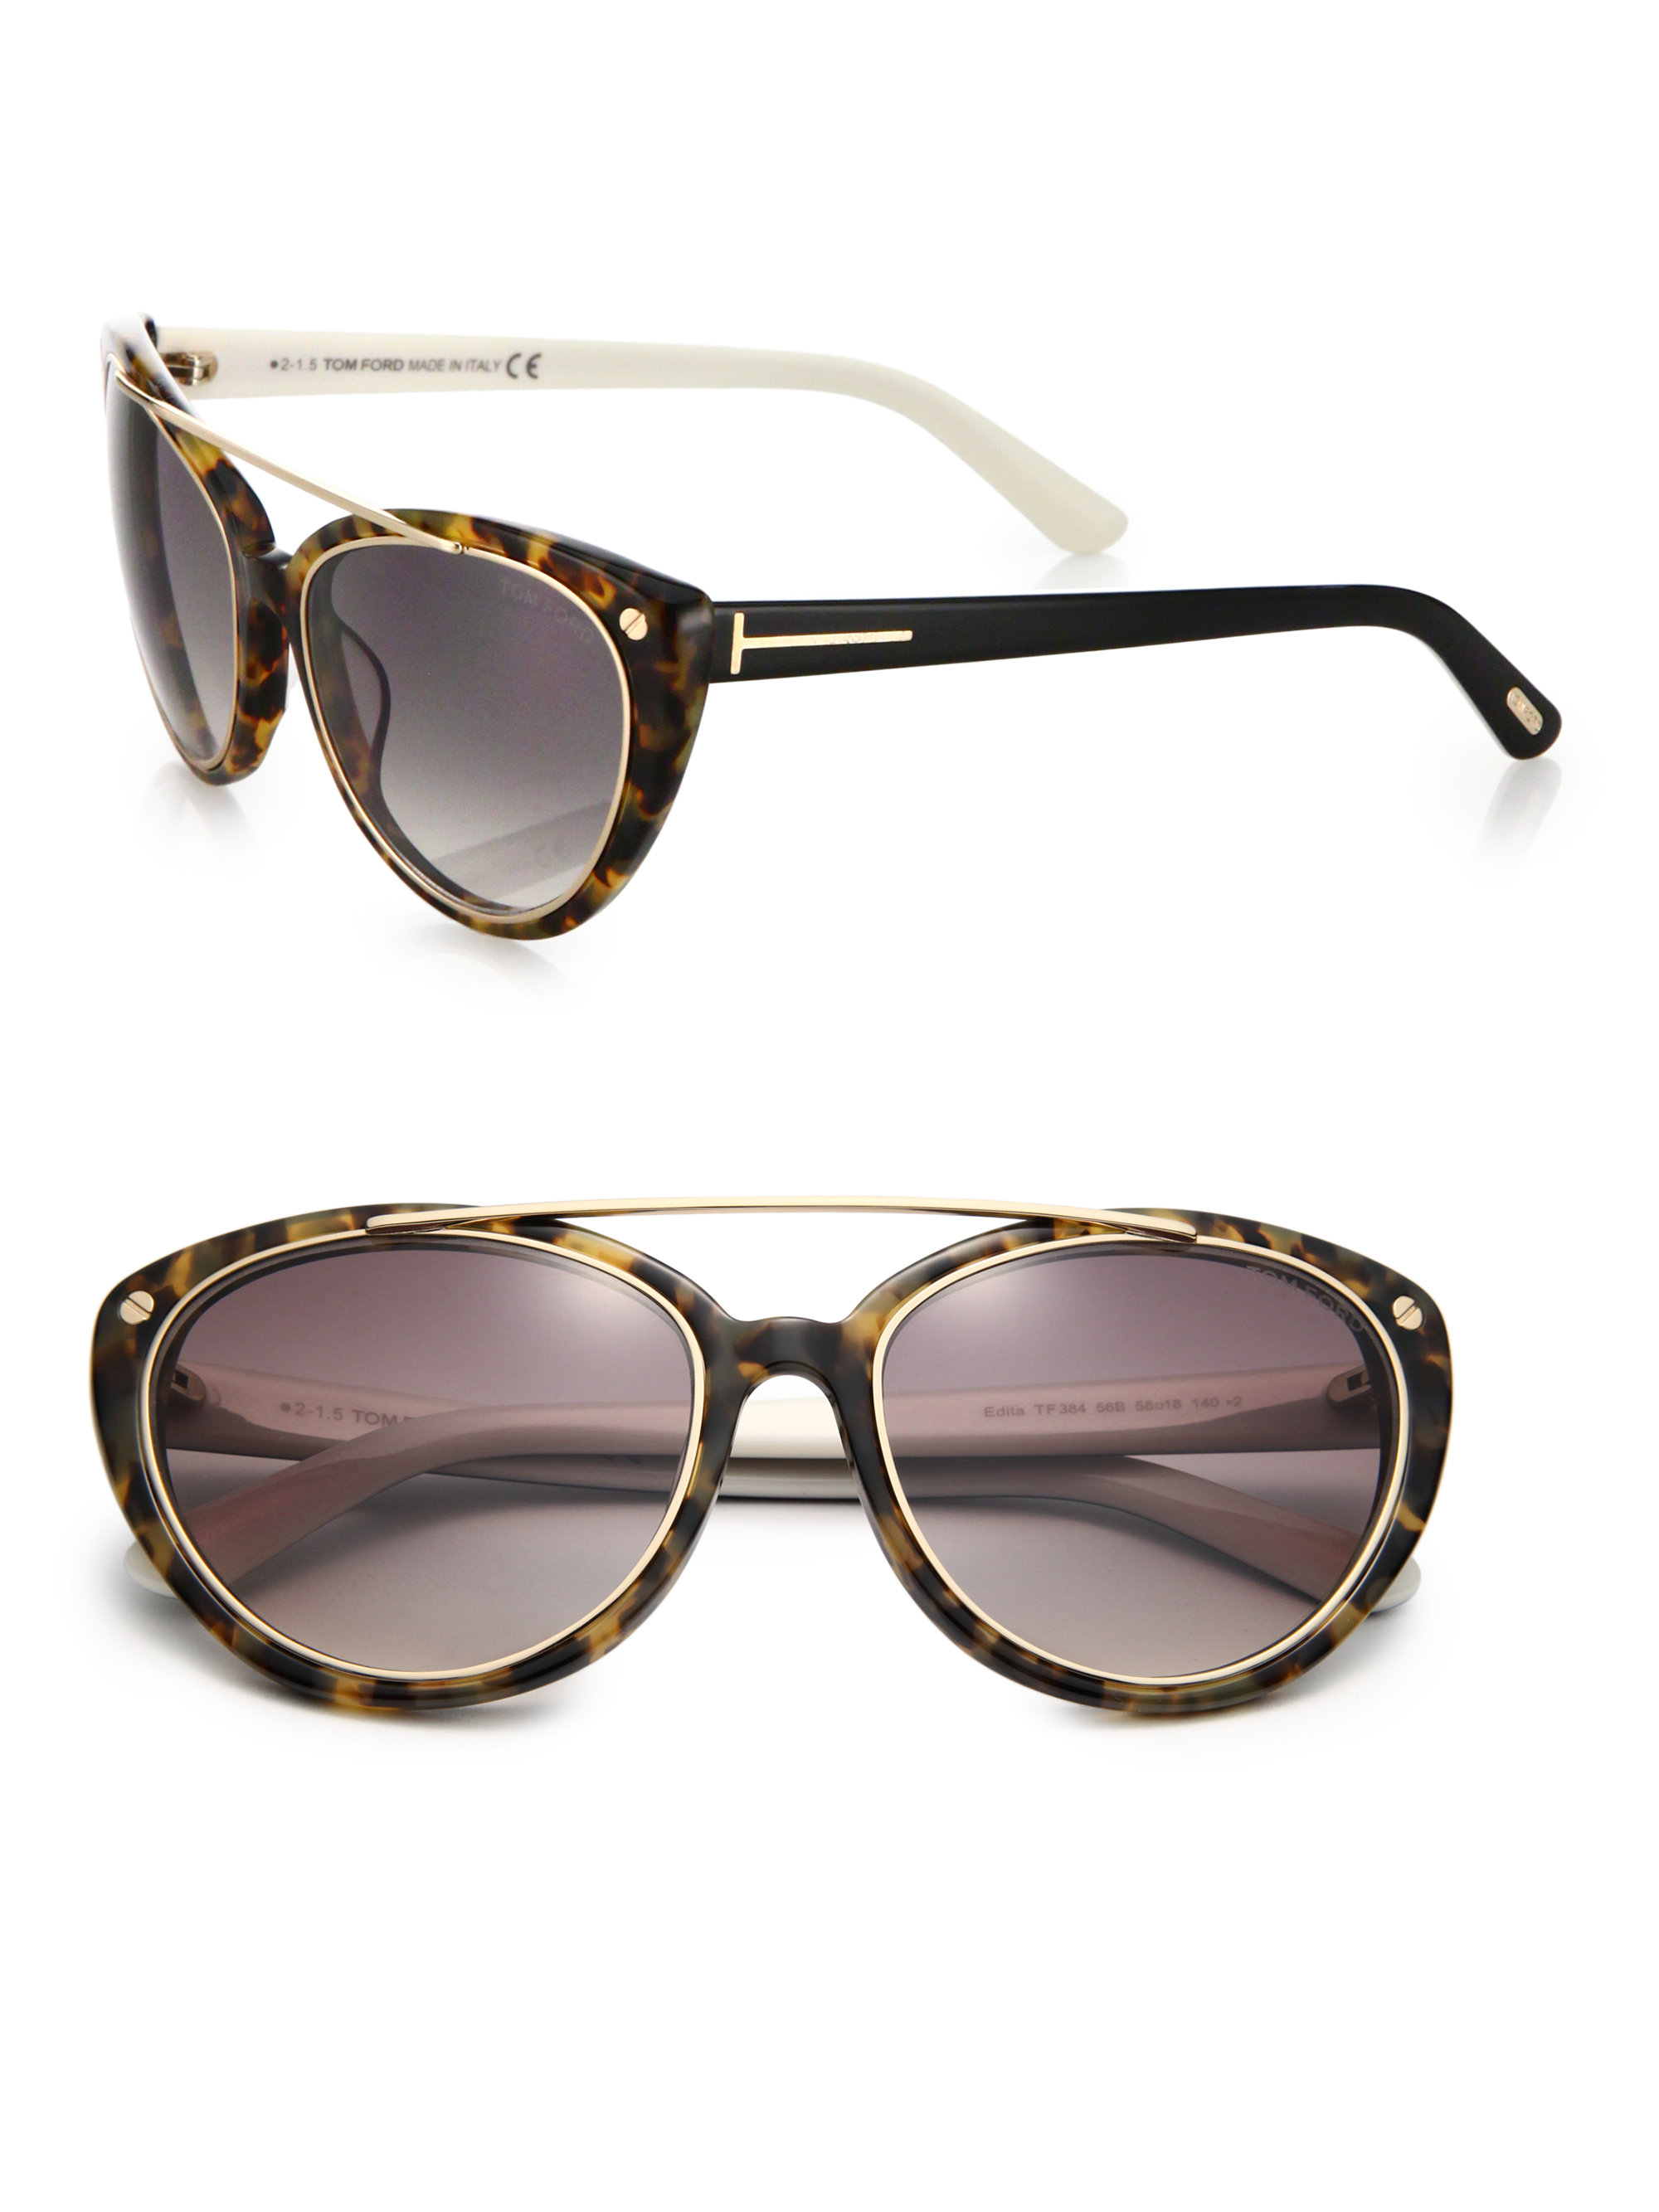 2f32fa48dd28e Lyst - Tom Ford 58mm Cat s-eye Sunglasses in Brown